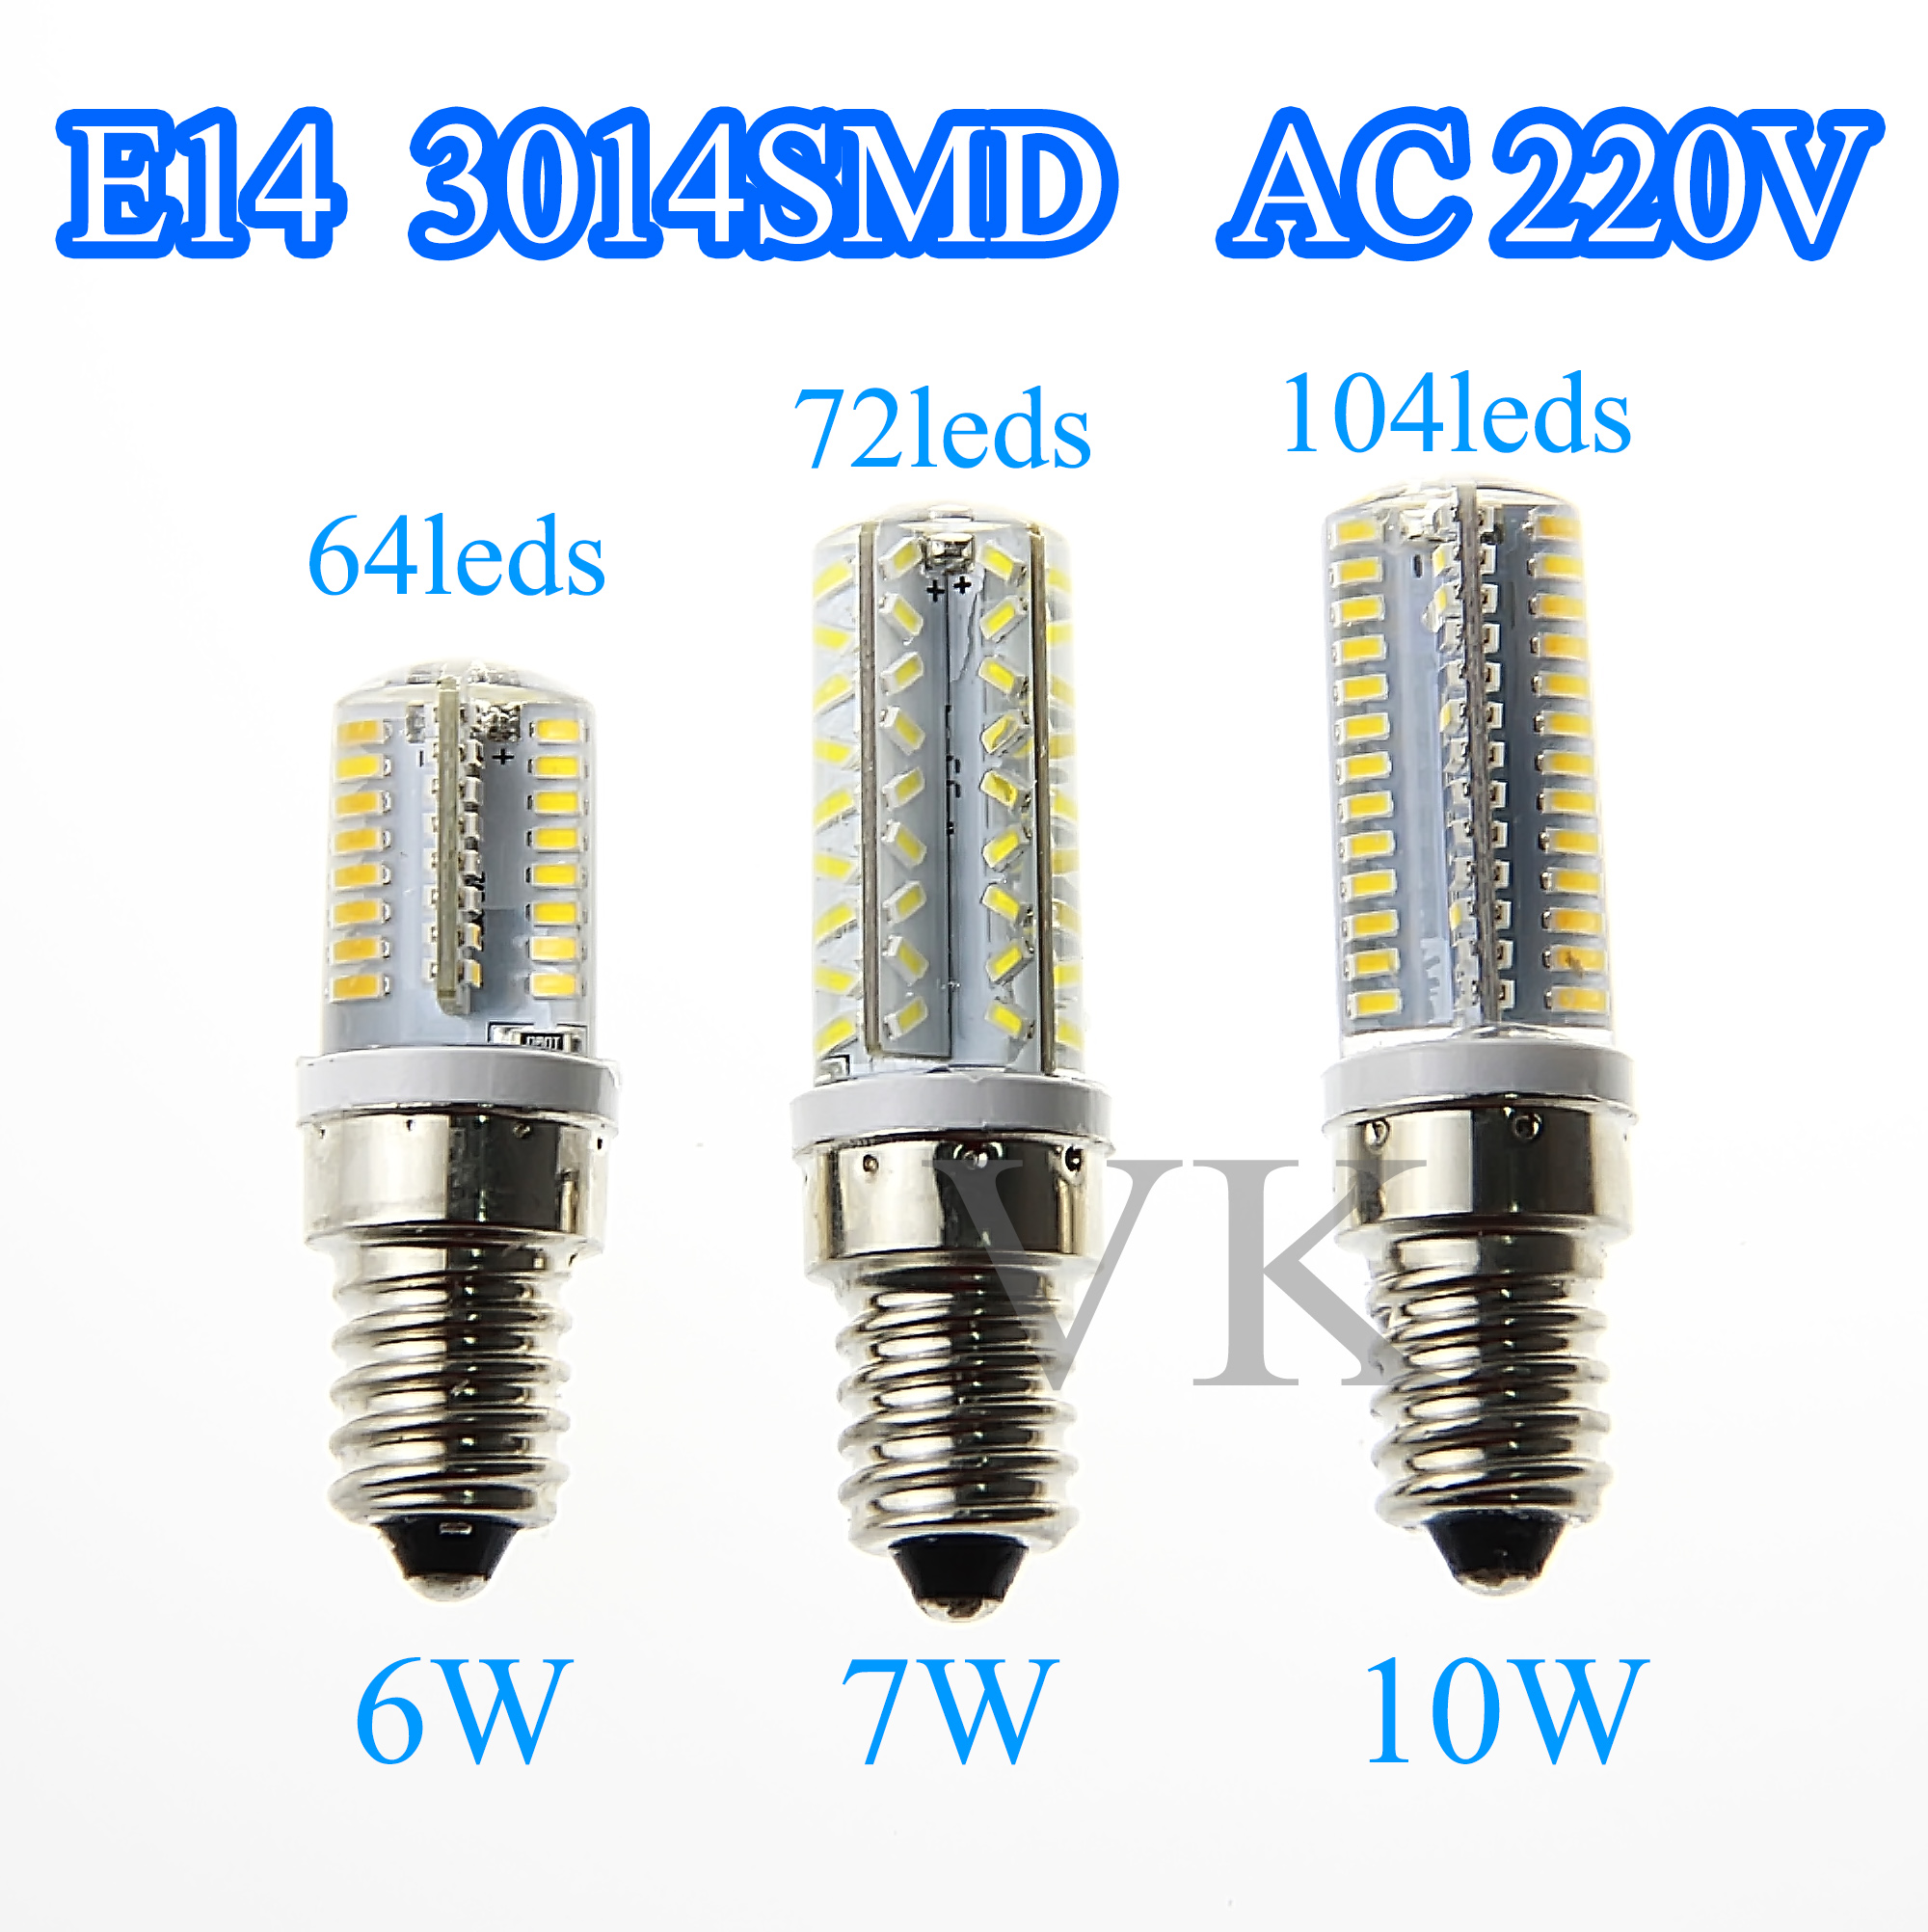 10PCS Mini E14 SMD3014 AC220V Dimmable Led Spotlight 6W7W10W Candle Ampoule Lampada High Brightness 64/72/104leds for home light<br><br>Aliexpress